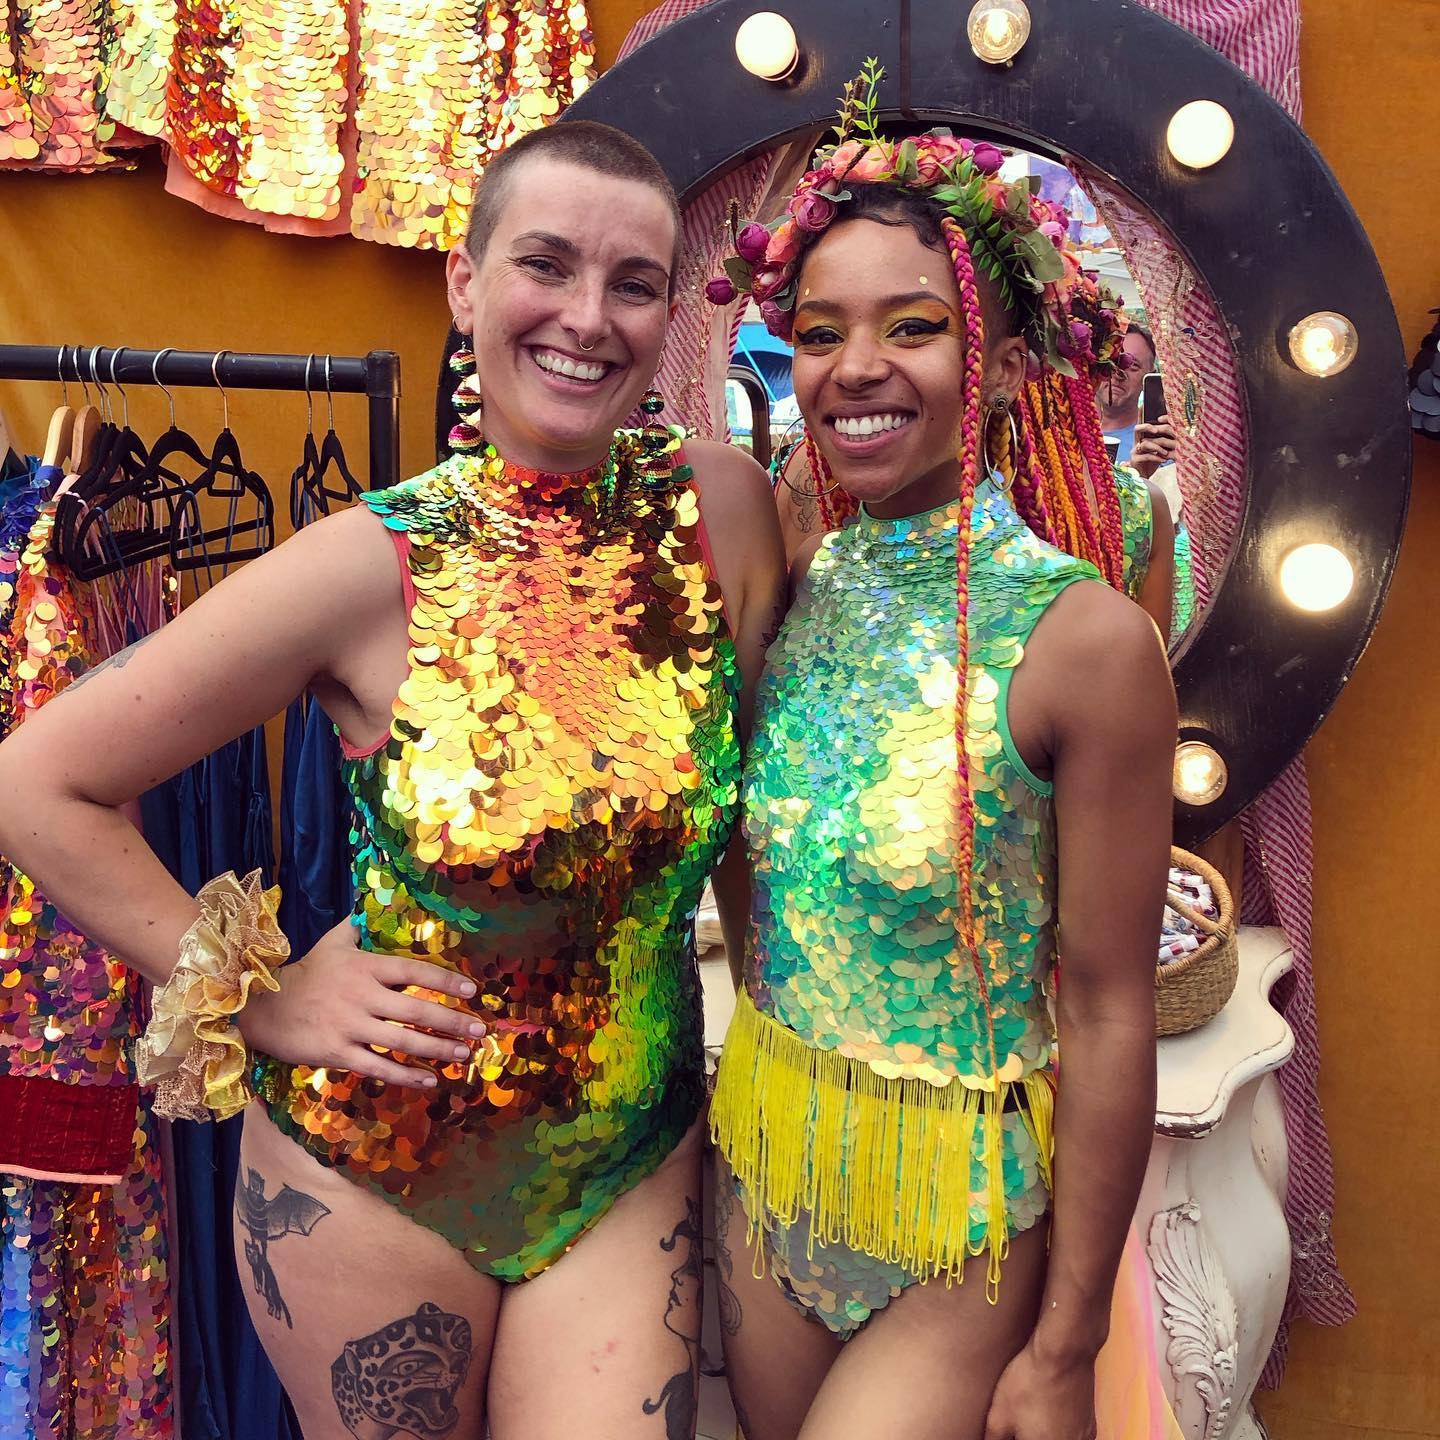 At glastonbury festival two friends pose in sequin leotards